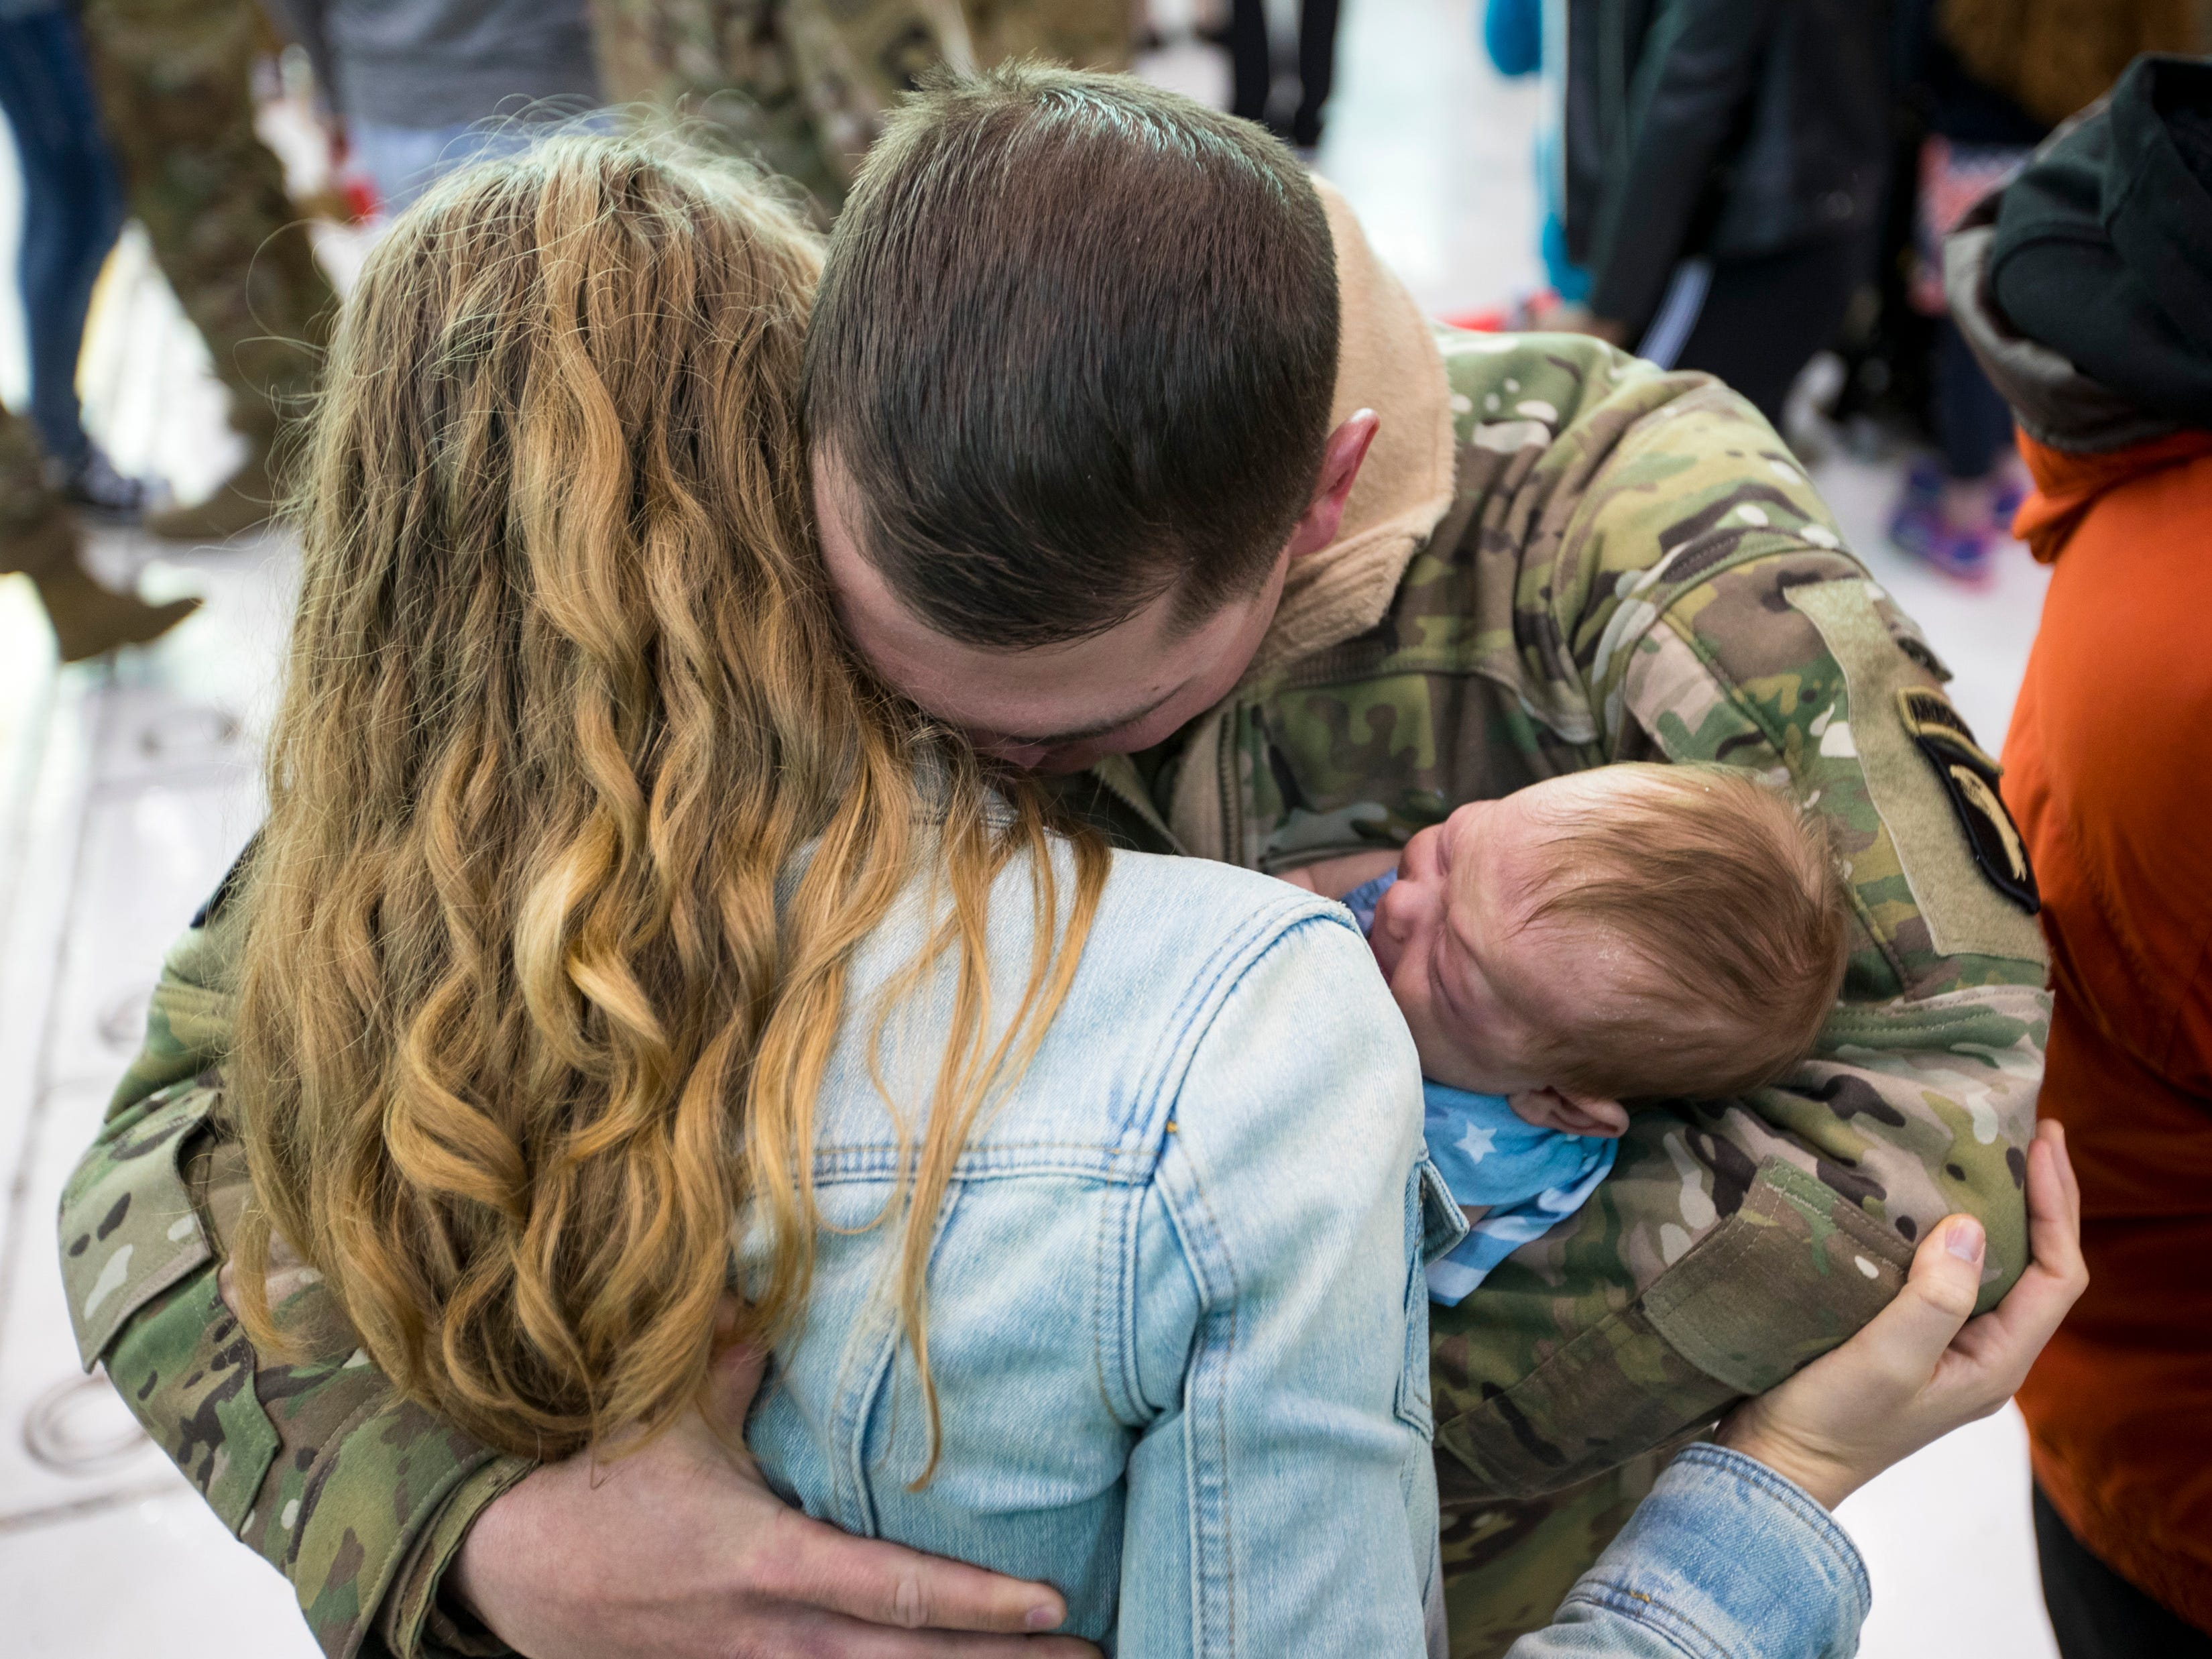 Staff Sgt. R.J. Paski hugs his wife Sarah Paski and his newborn Gianna Paski, 2 months, during a homecoming ceremony for members of the 101st Combat Aviation Brigade and 101st Sustainment Brigade at Fort Campbell in Clarksville on Thursday, Feb. 21, 2019. It was the first time Staff Sgt. Paski held his daughter. The soldiers were returning from a nine-month deployment to Afghanistan.